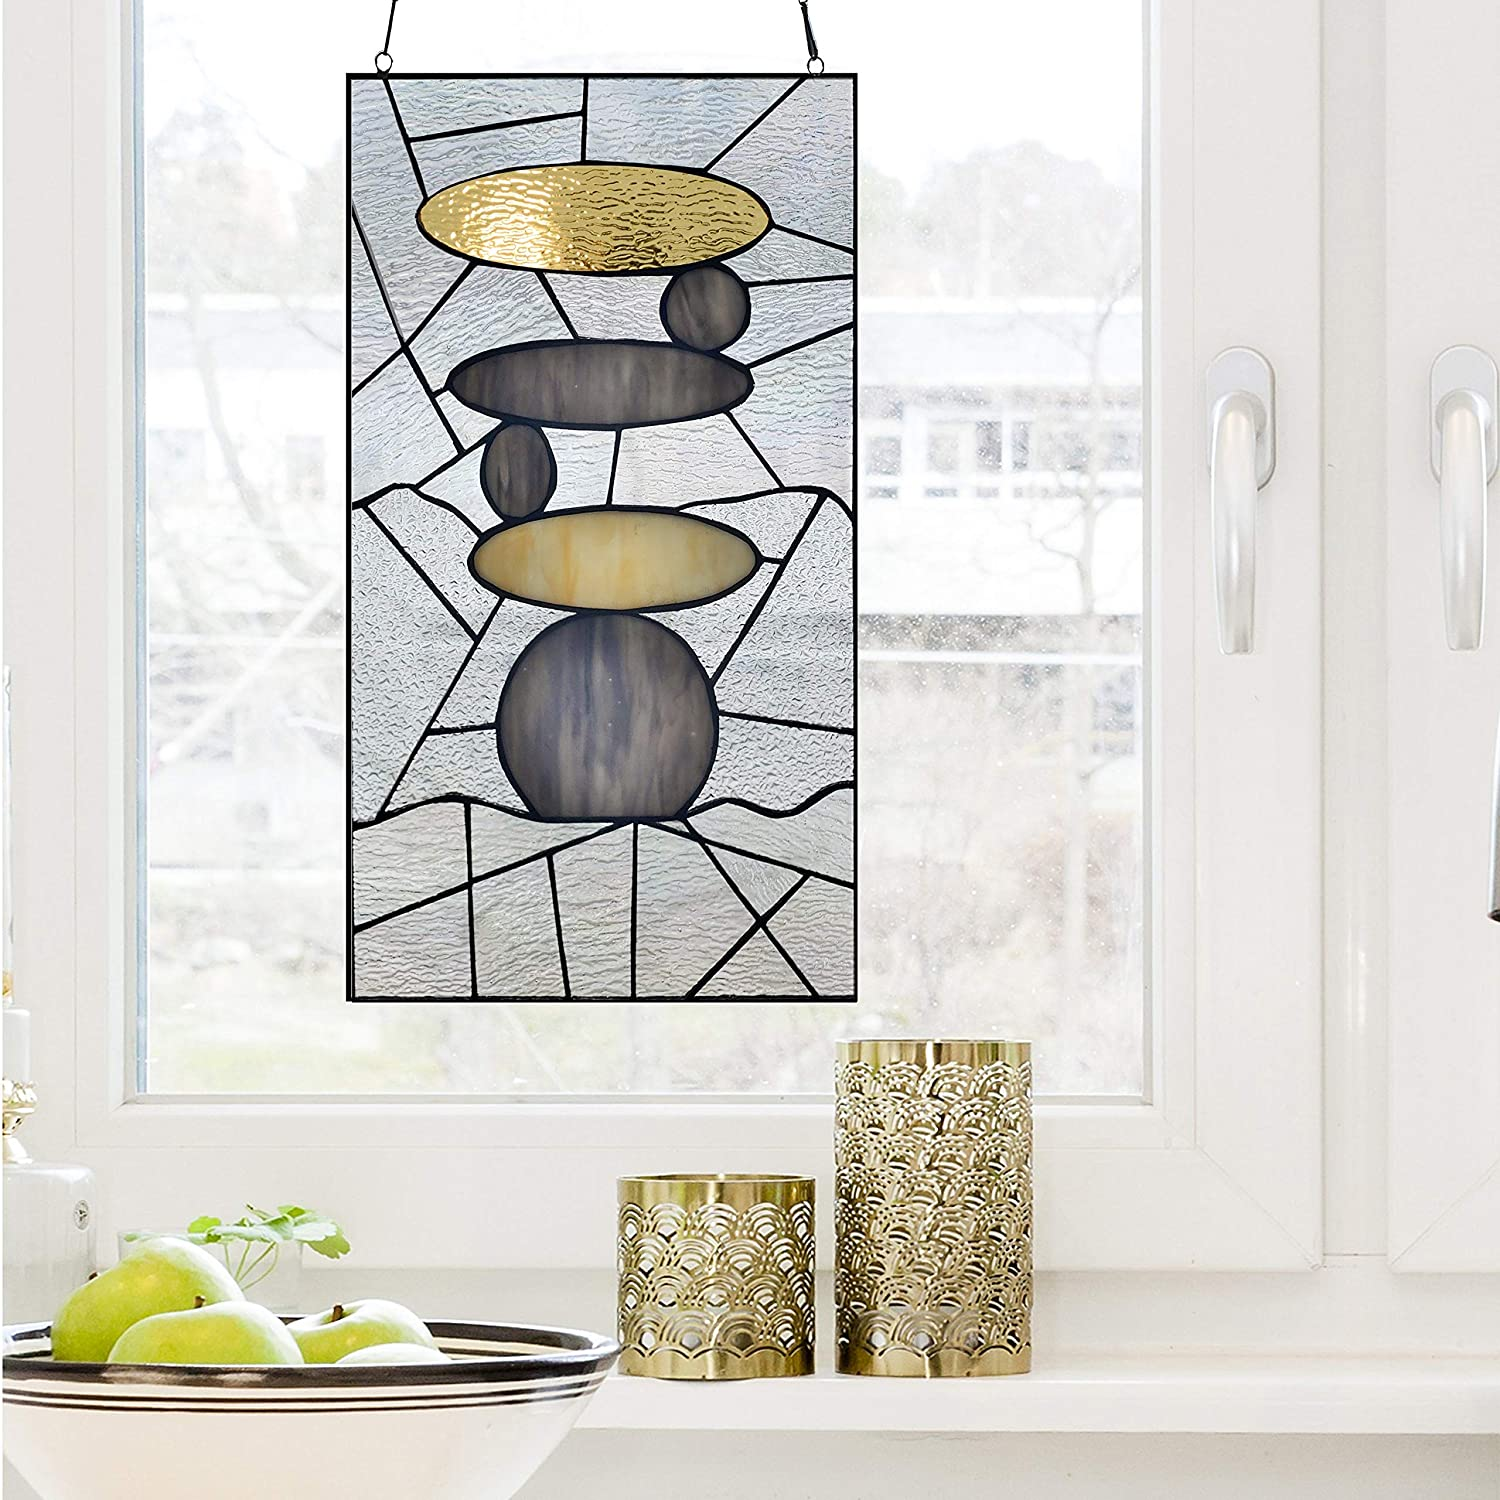 UKN 18 H NAMASTE STAINED GLASS WINDOW PANEL GREY MODERN CONTEMPORARY TRANSITIONAL RECTANGULAR NATURE INCLUDES HARDWARE